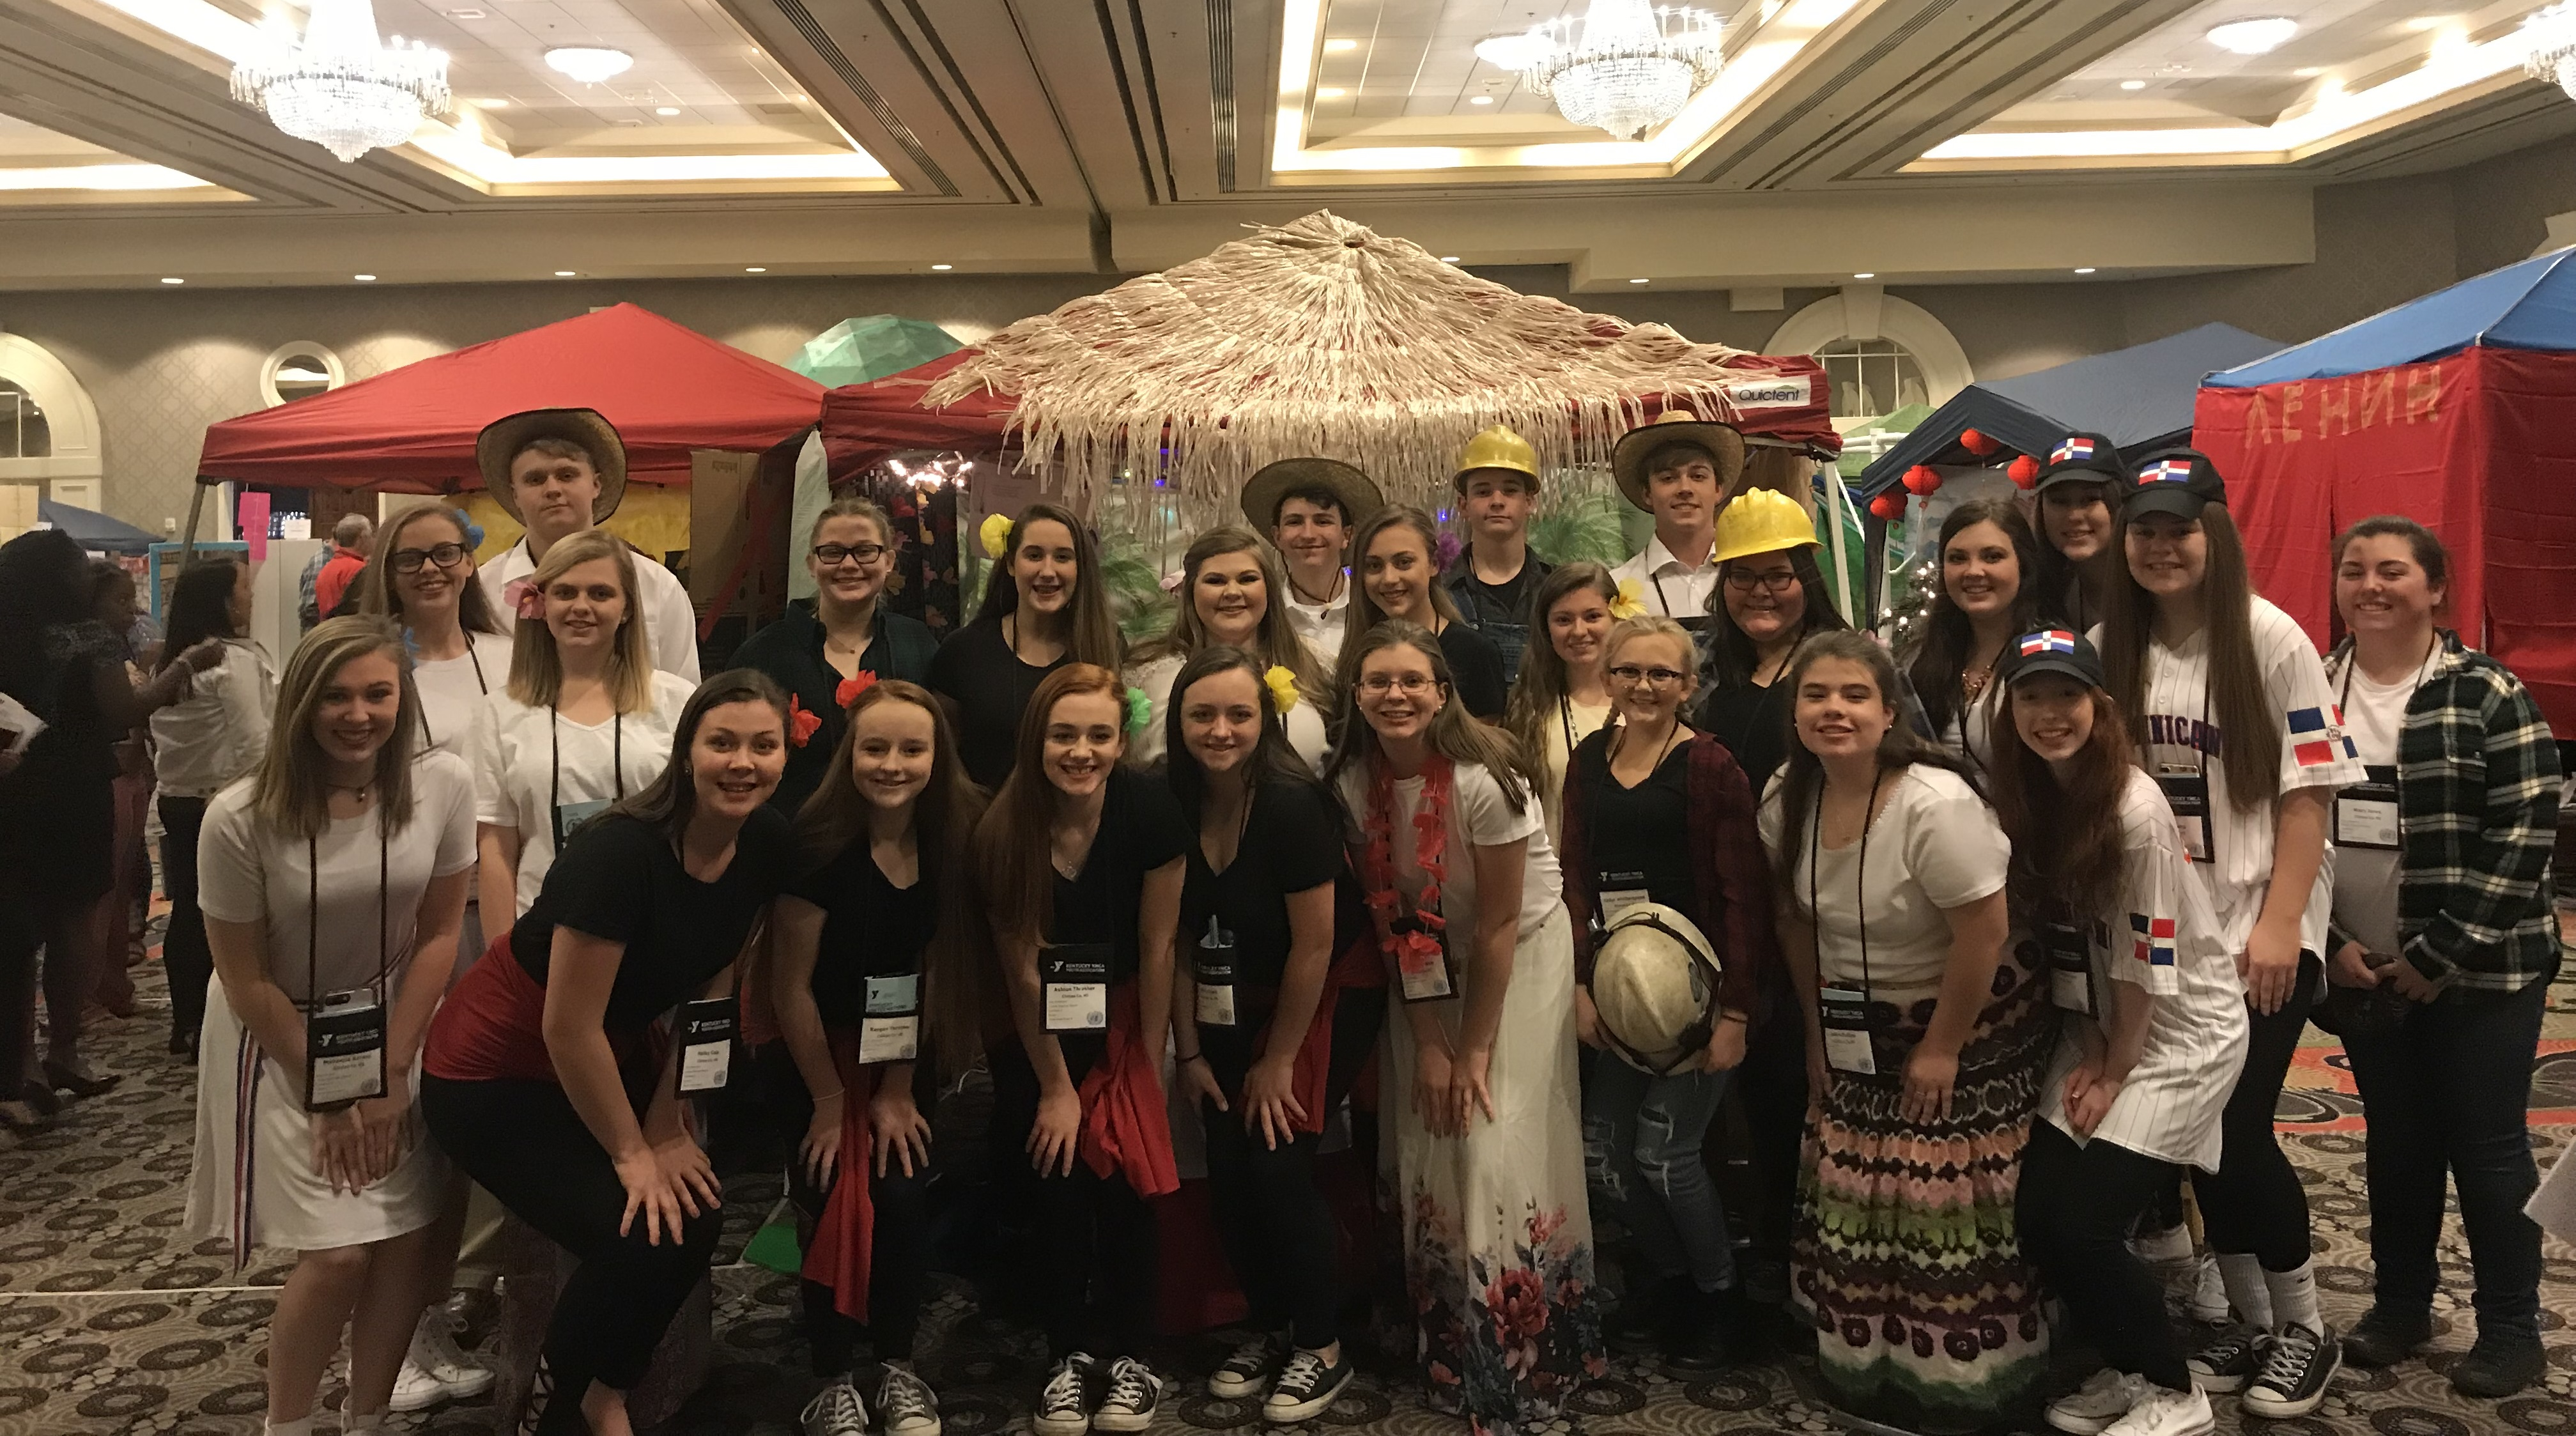 The Clinton County High School delegation attended the Kentucky United Nations Assembly (KUNA) at the Galt House in Louisville on March 11-13, 2018.